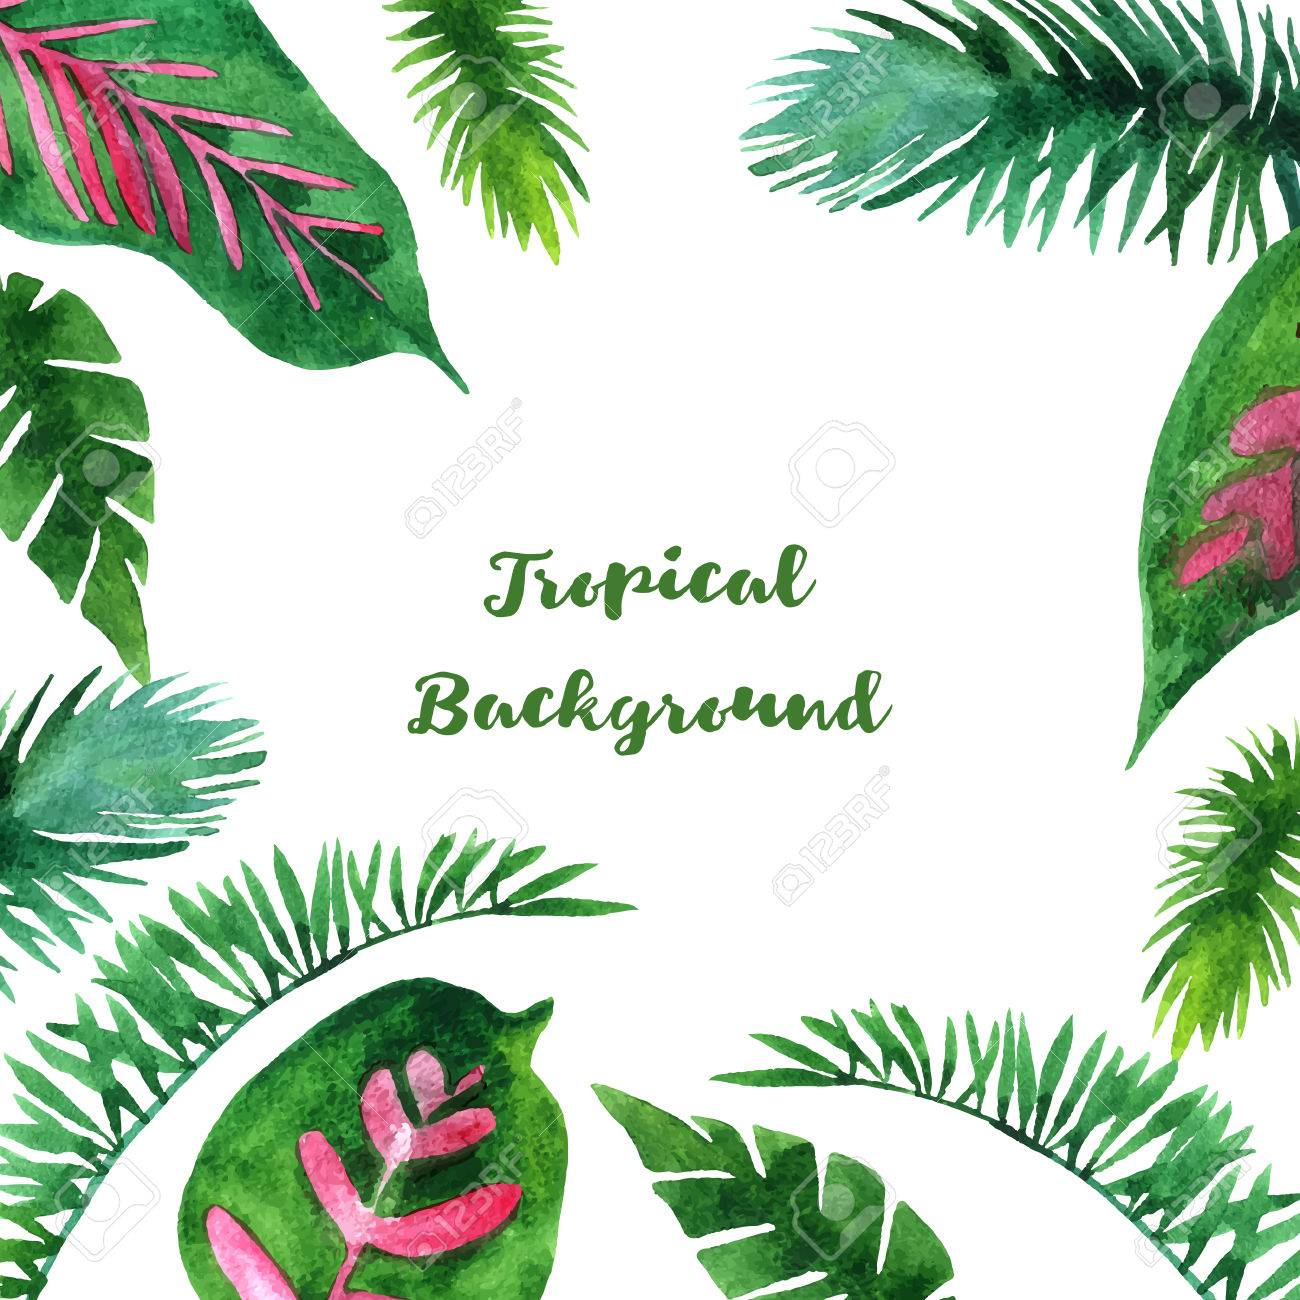 1300x1300 Background With Watercolor Green Leaves Of Palm Tree, Exotic